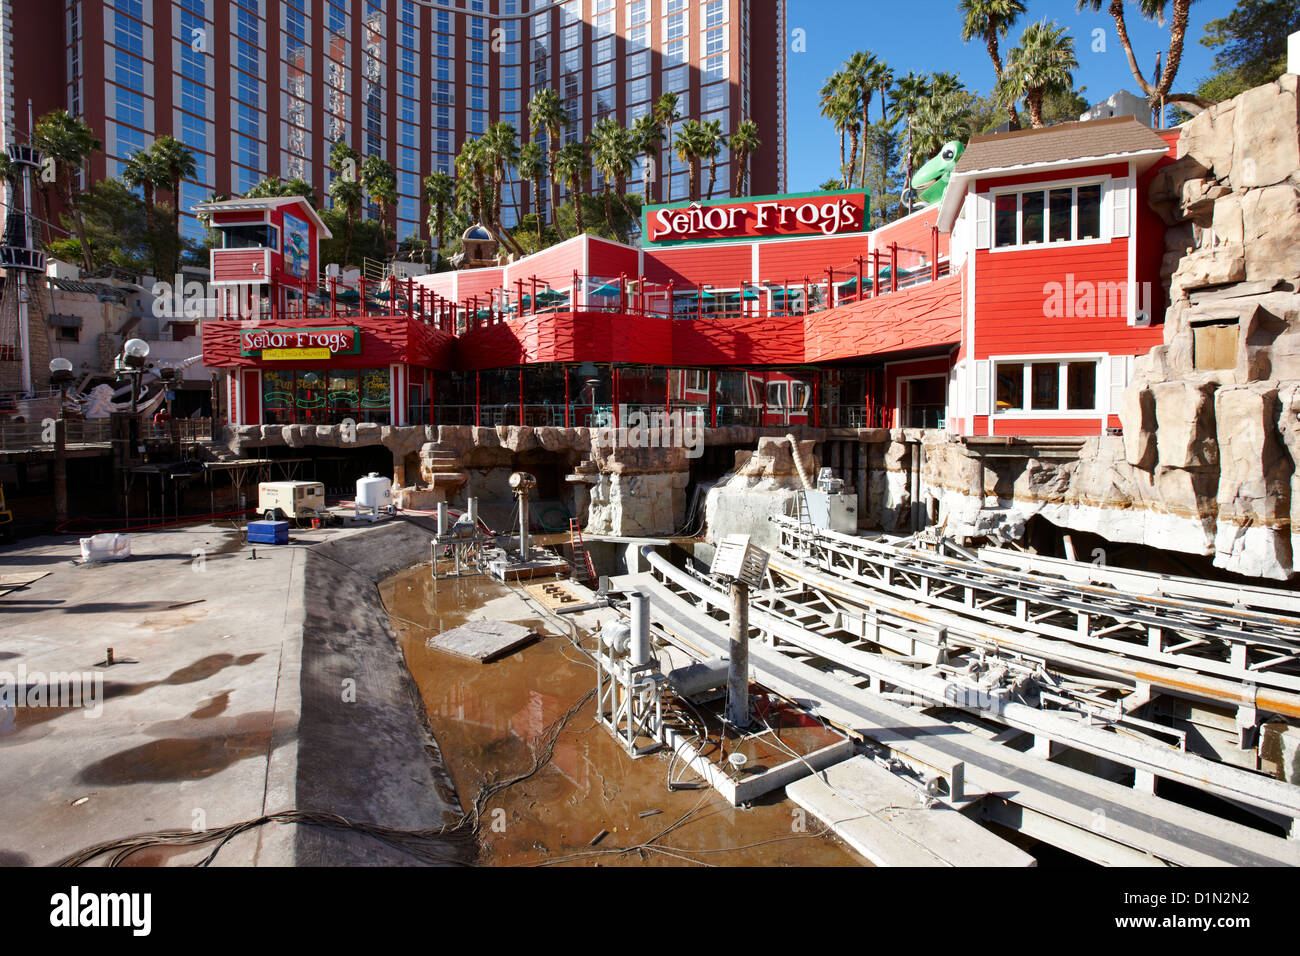 treasure island hotel and casino pirates lagoon drained for works during drought in Las Vegas Nevada USA - Stock Image